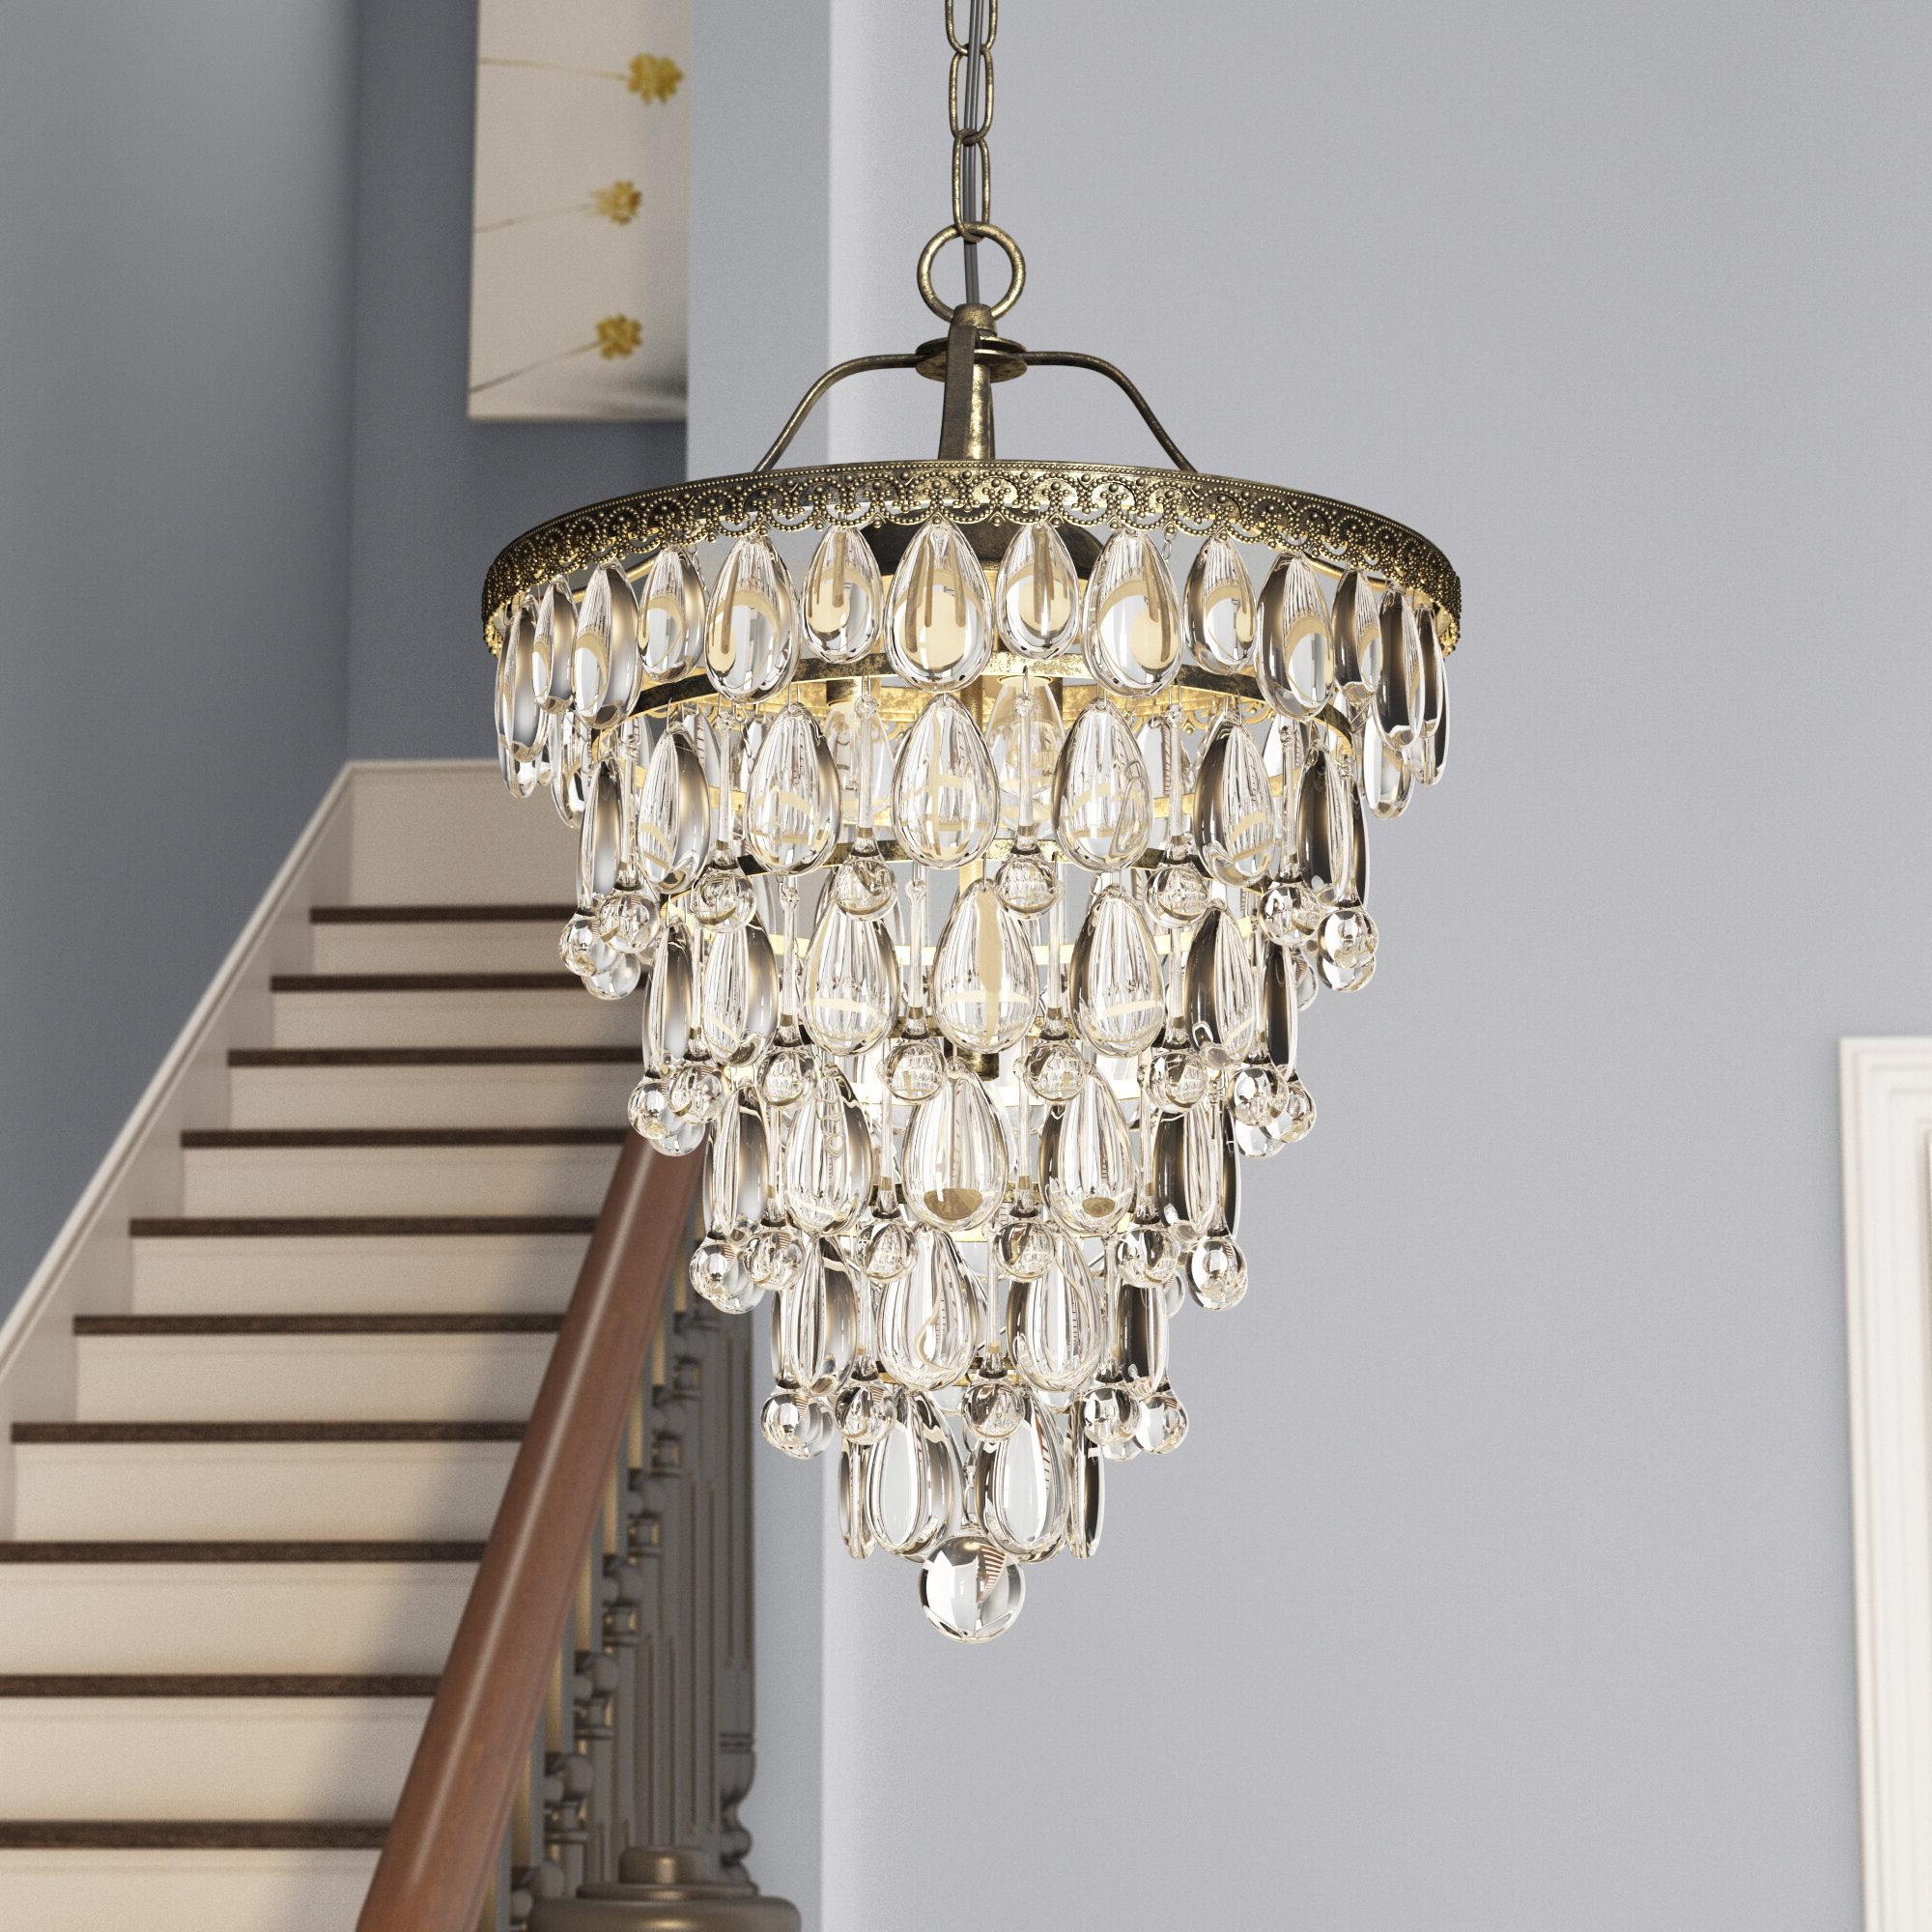 Most Recent Totnes 4 Light Crystal Chandelier Within Benedetto 5 Light Crystal Chandeliers (View 10 of 20)